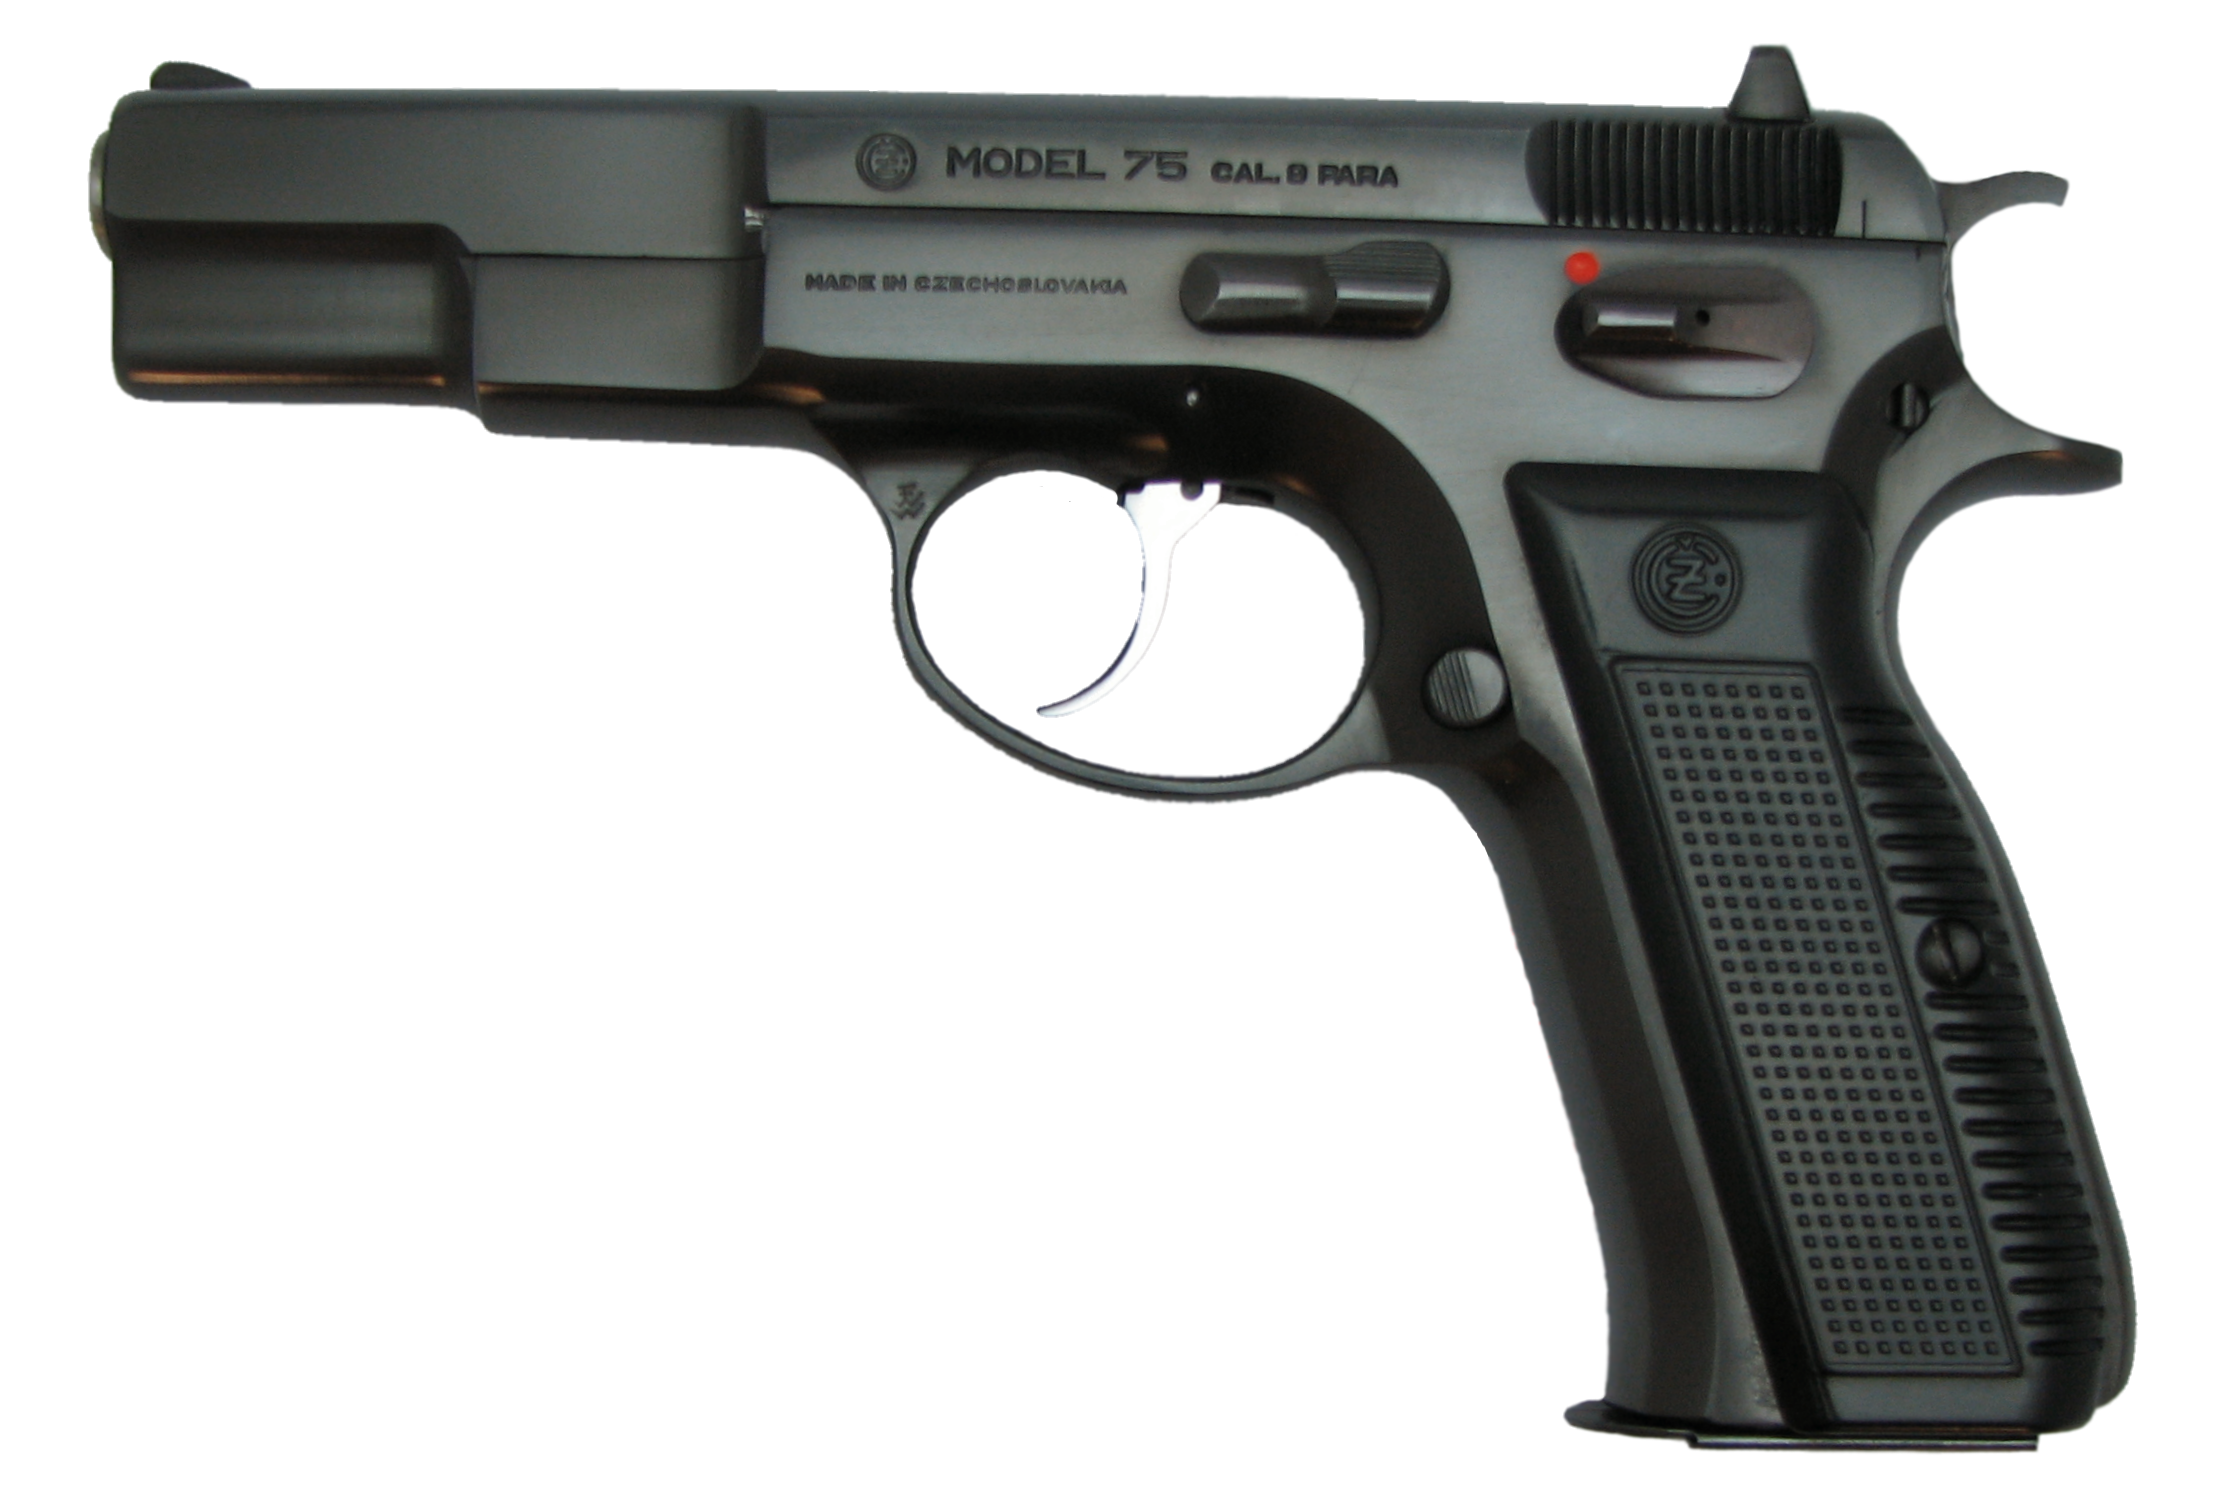 Revolver gun pointing png. Image hand images beretta